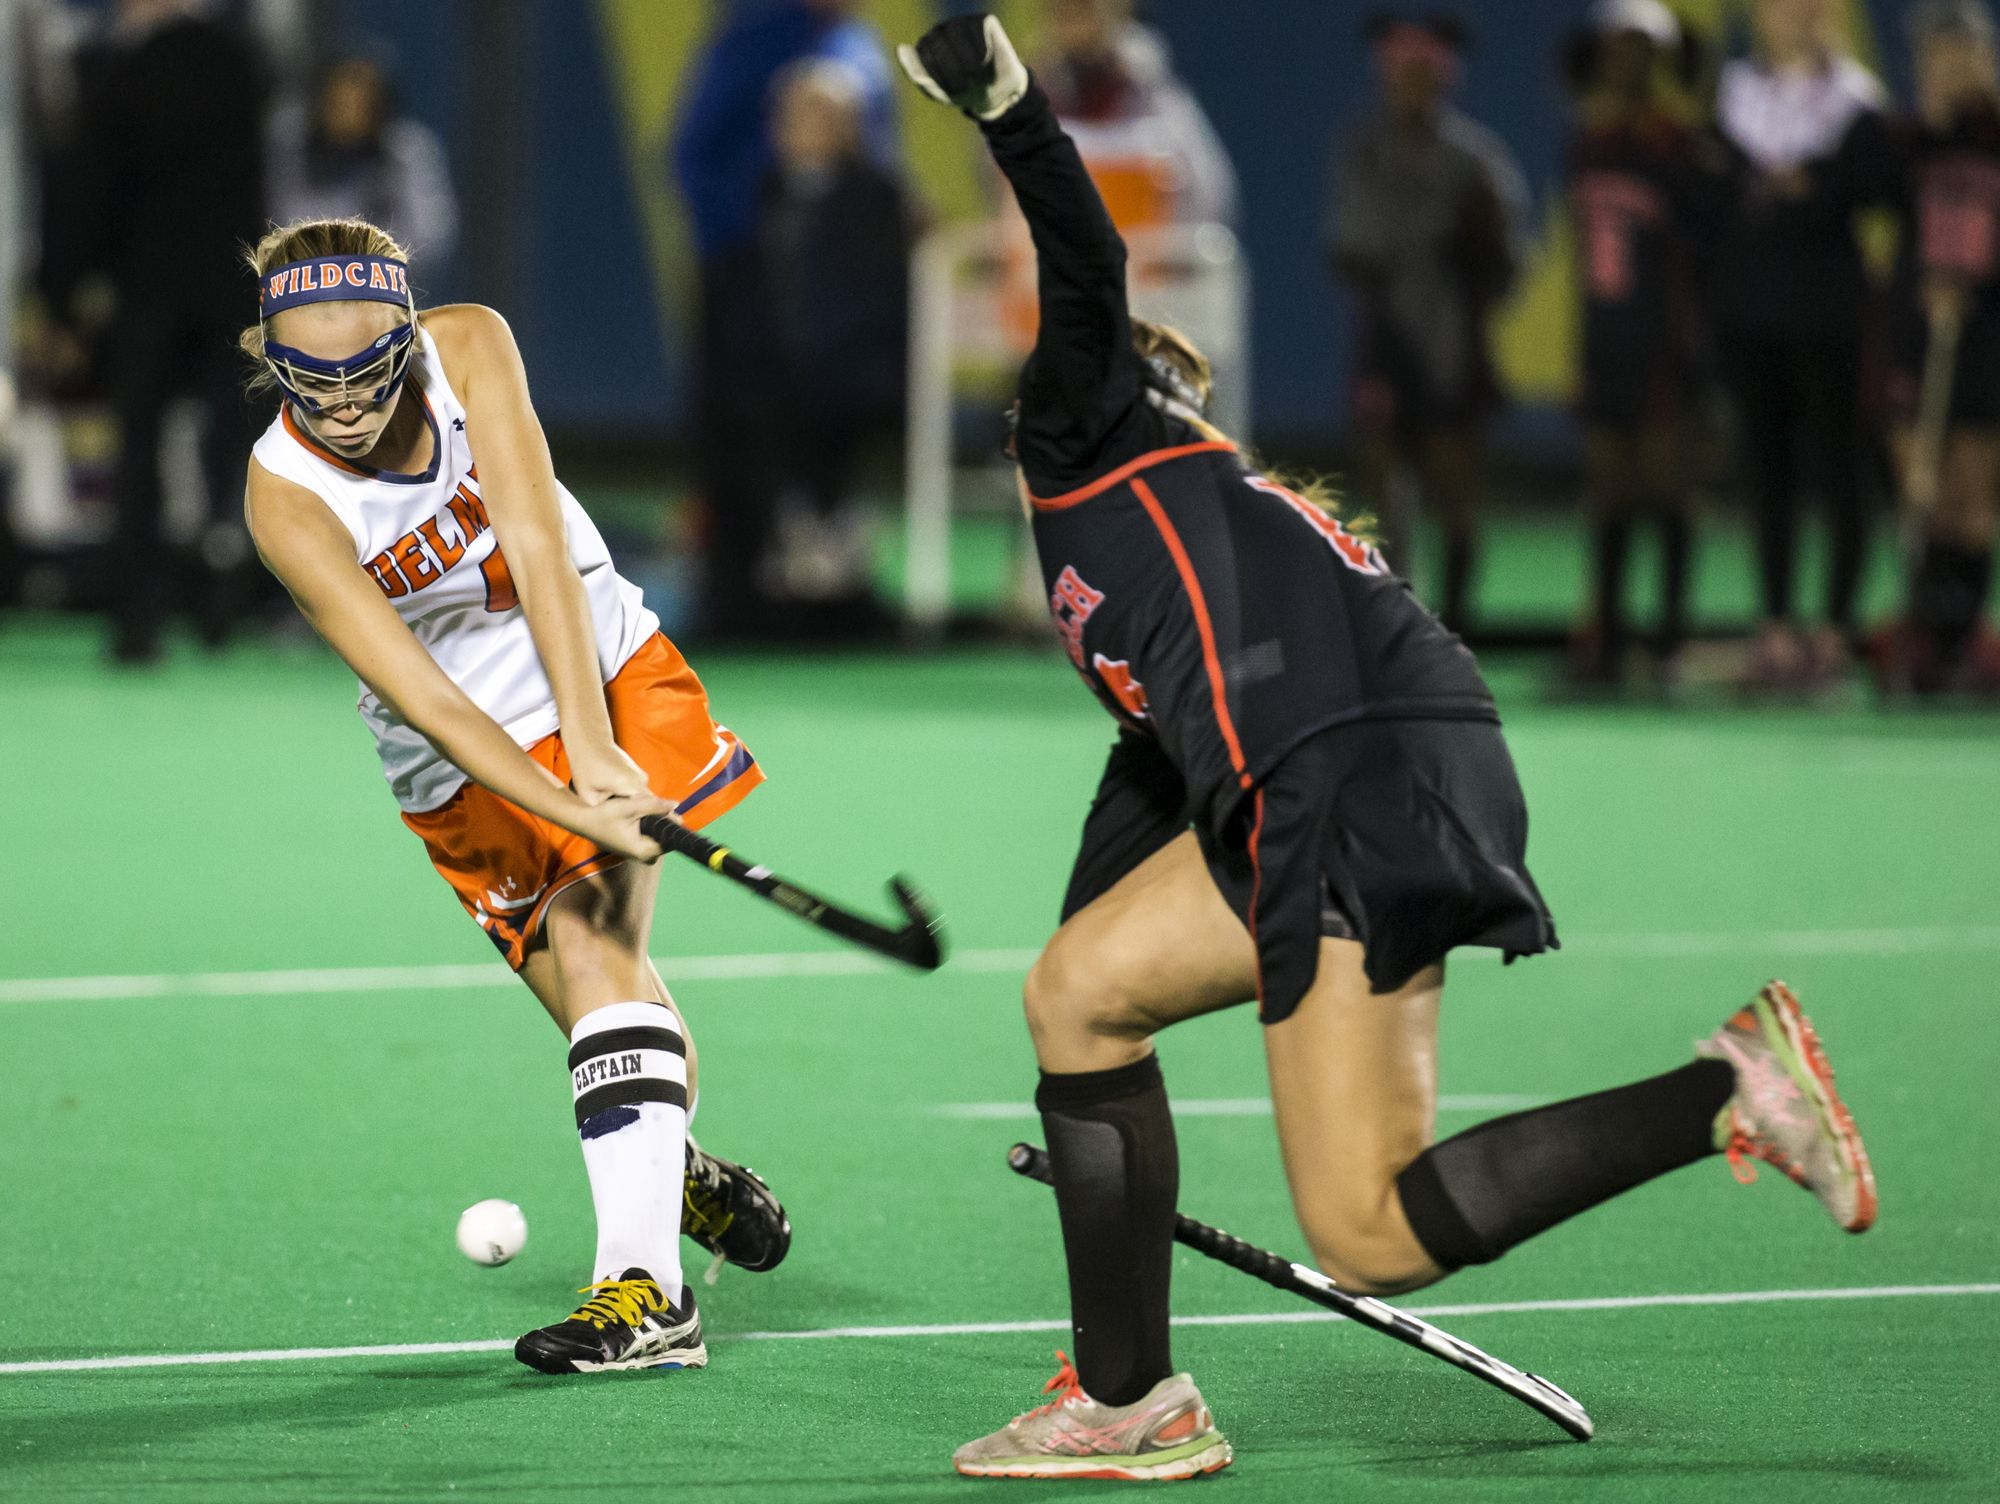 Delmar's Peyton Kemp (left) puts a shot on goal in the first half of Delmar's 2-0 win over Polytech in their DIAA state tournament semi-final game at the University of Delaware in Newark on Tuesday night.